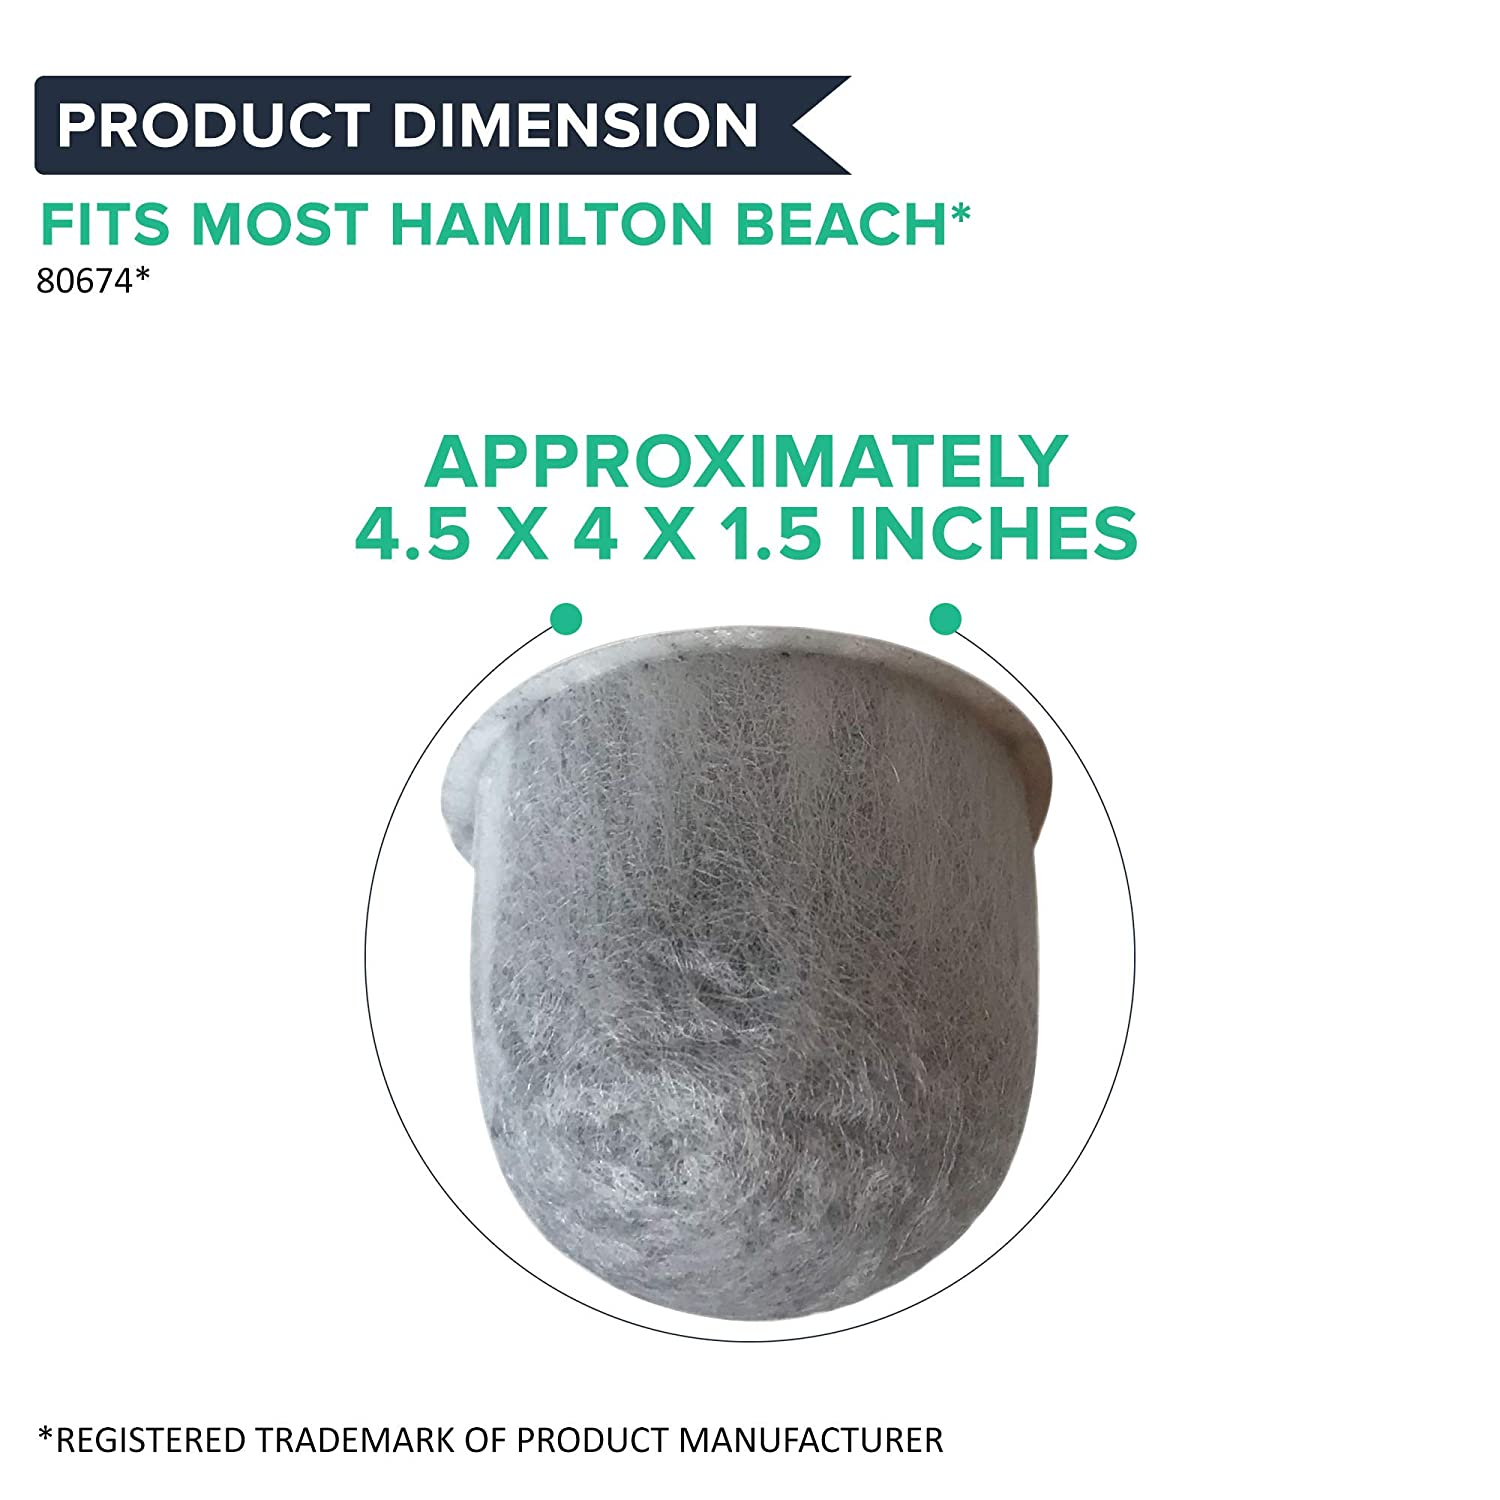 Think Crucial 12 Replacements for Hamilton Beach Charcoal Water Filters Stay or Go /& Brew Station 7.02E+11 Fits Mod Cafe Compatible With Part # 80674